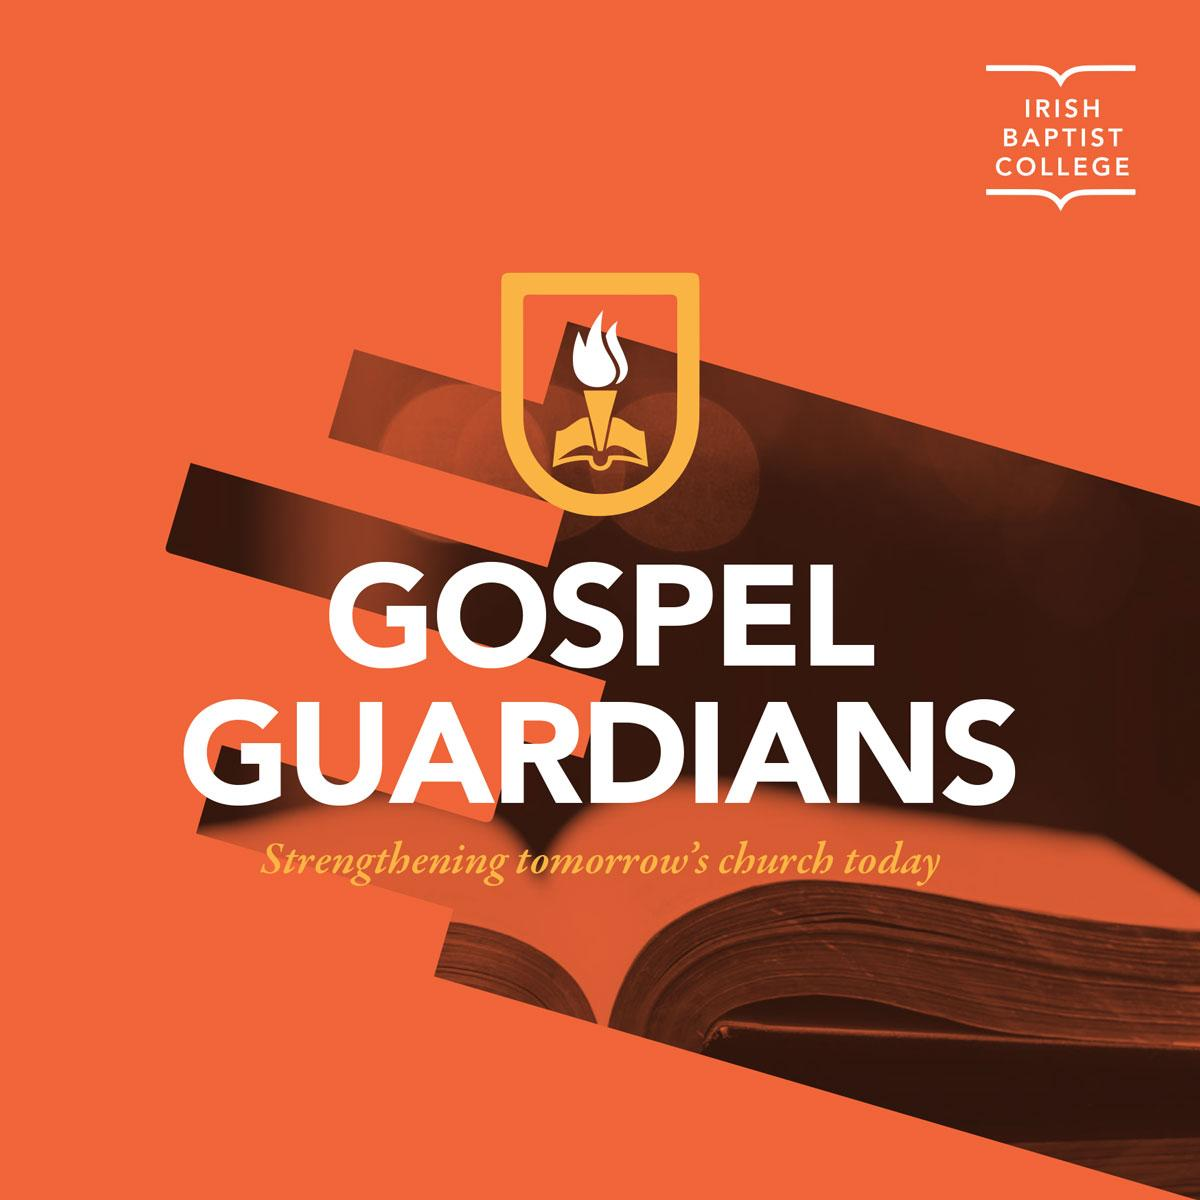 Image: gospel-guardians-protecting-the-purity-of-the-gospel-for-future-generations